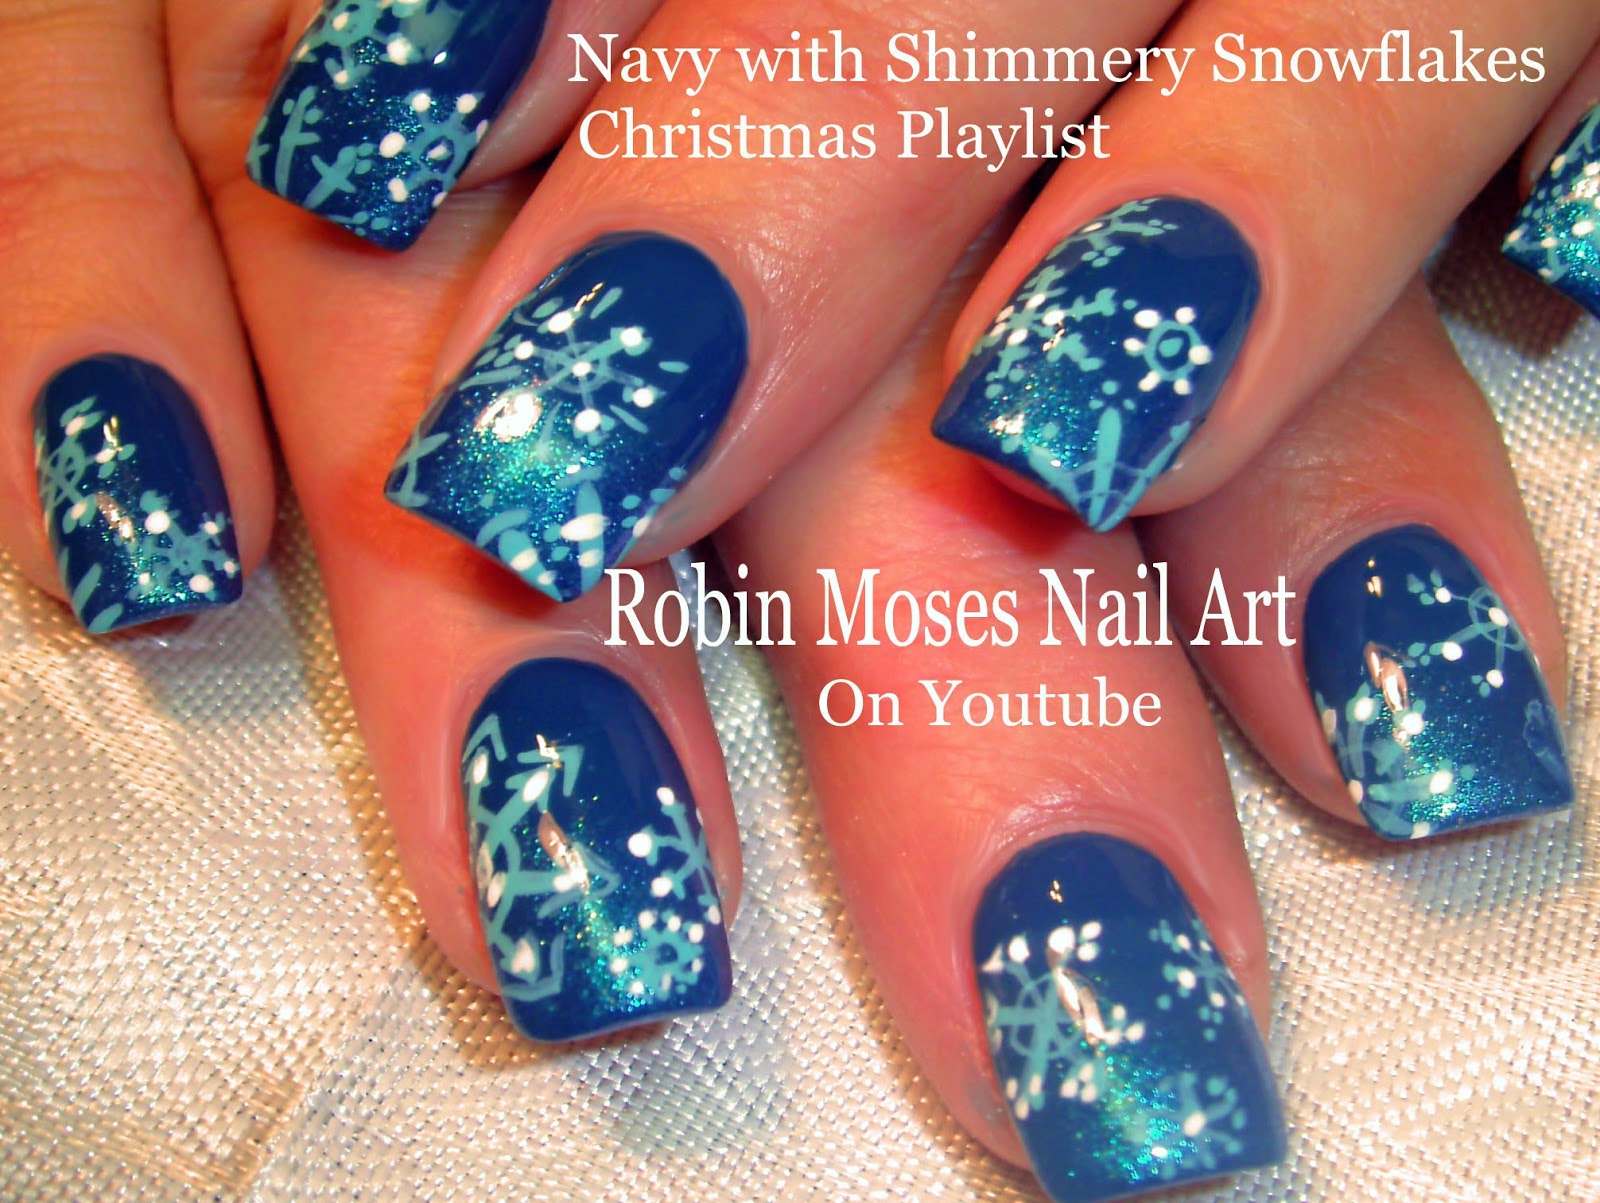 Robin moses nail art snowflake nails red nail art christmas easy snowflake nails christmas nail art design tutorial prinsesfo Image collections